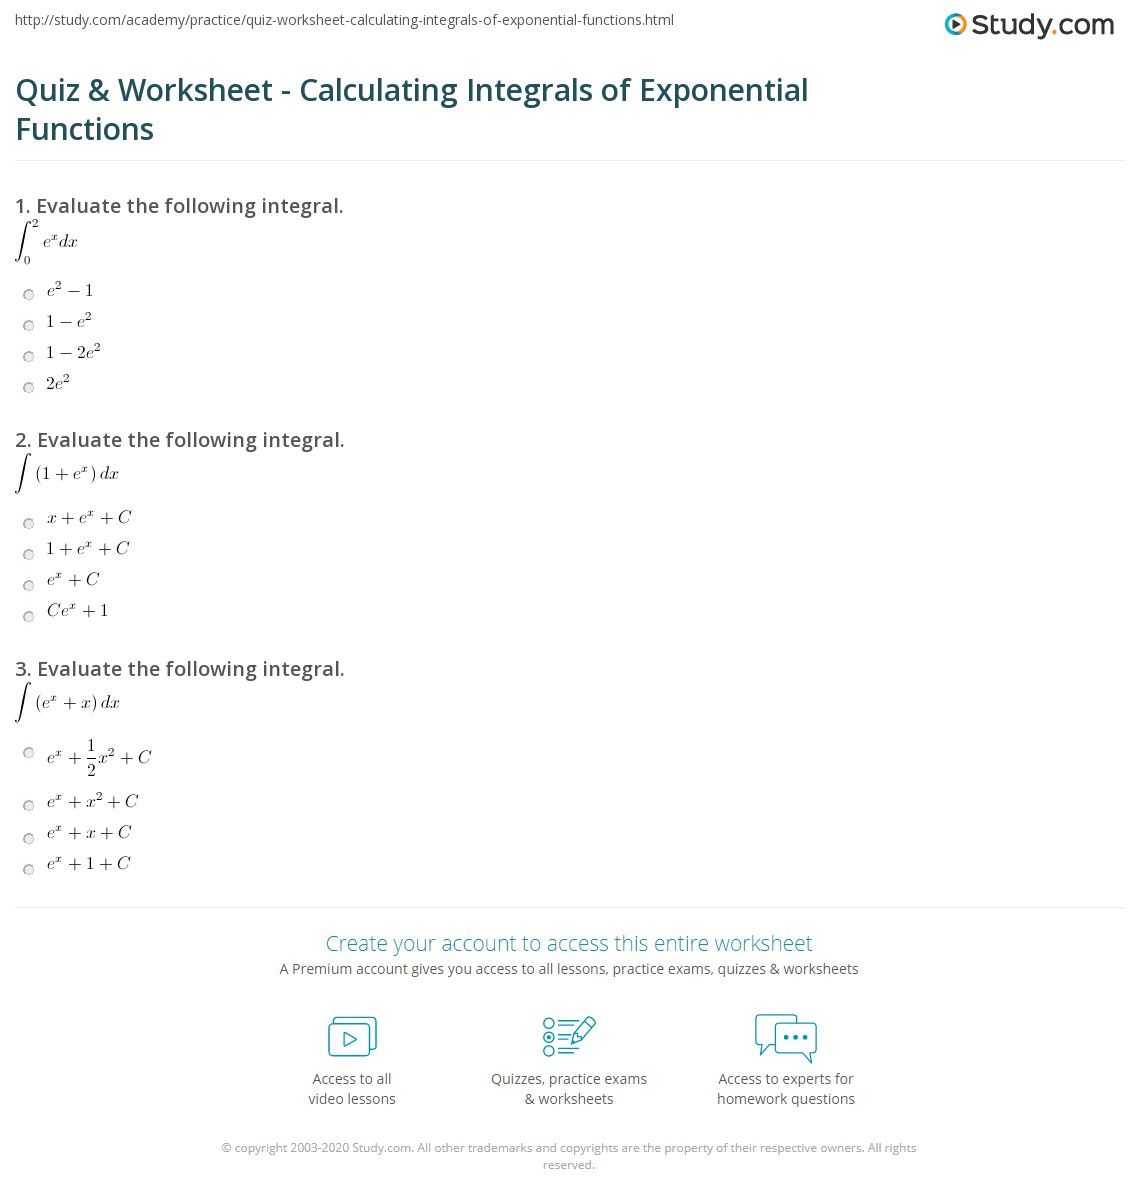 Quiz & Worksheet - Calculating Integrals of Exponential Functions ...